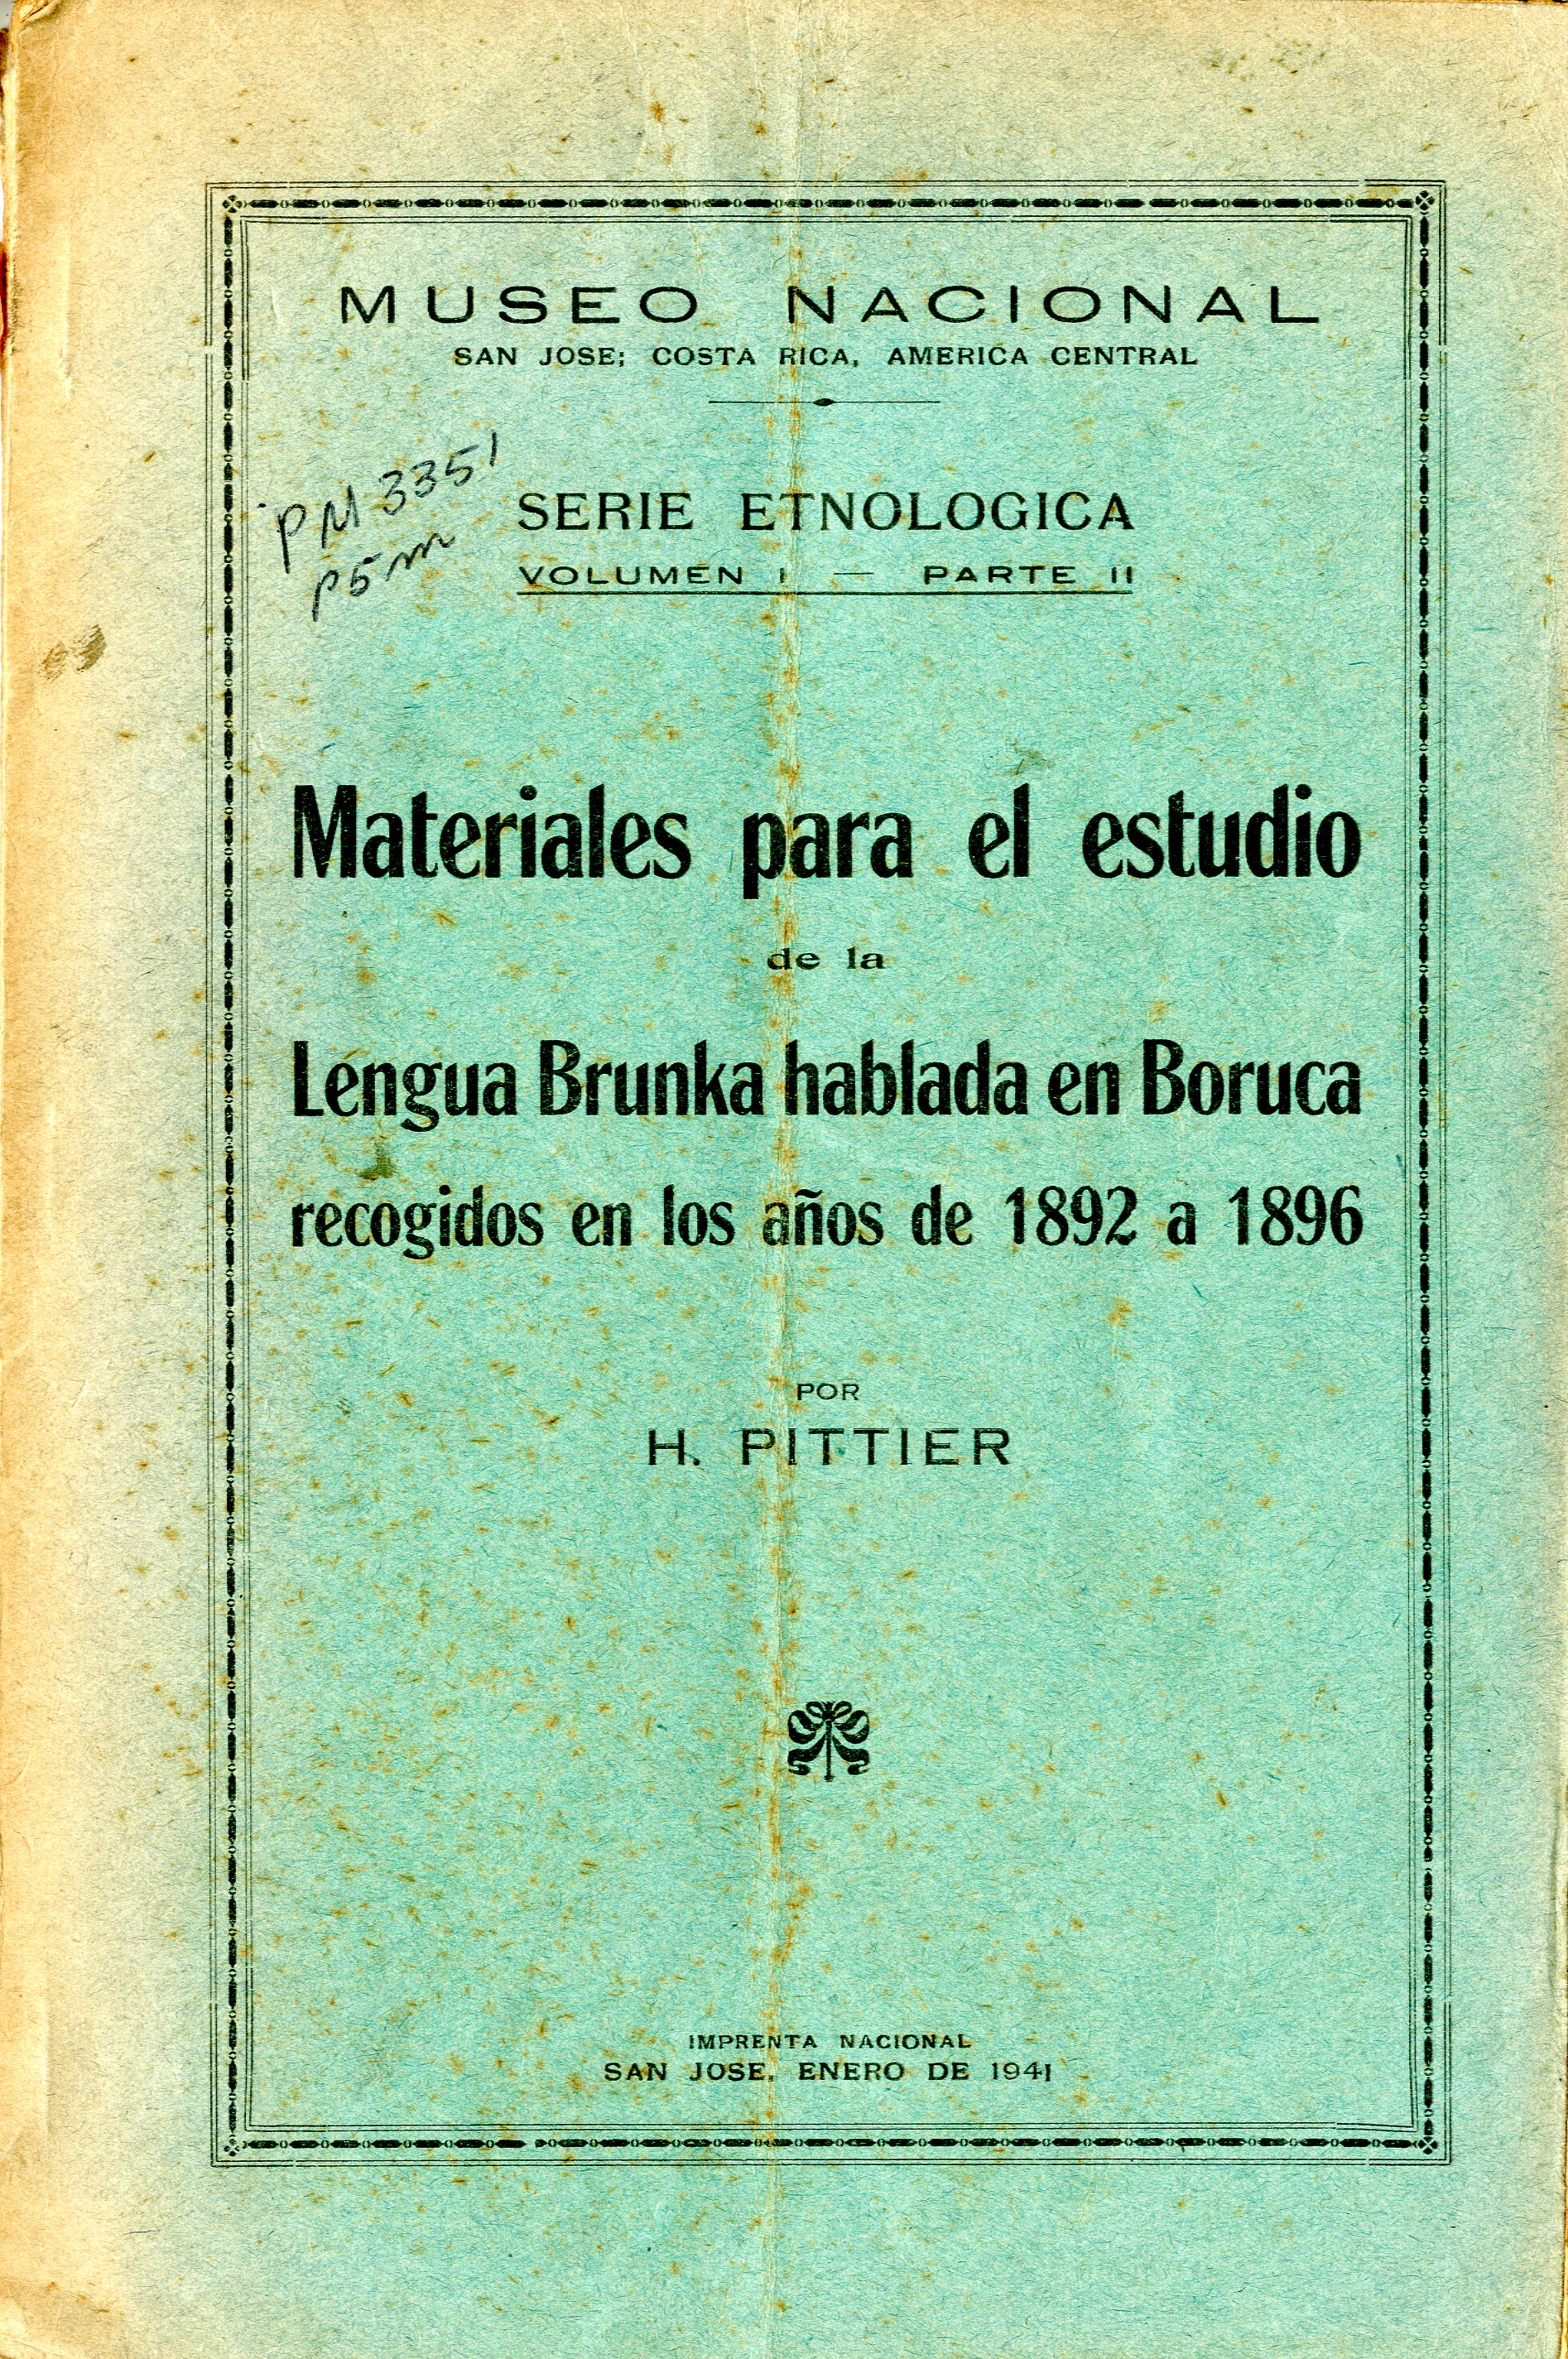 Materiales estudio lengua brunka.jpg